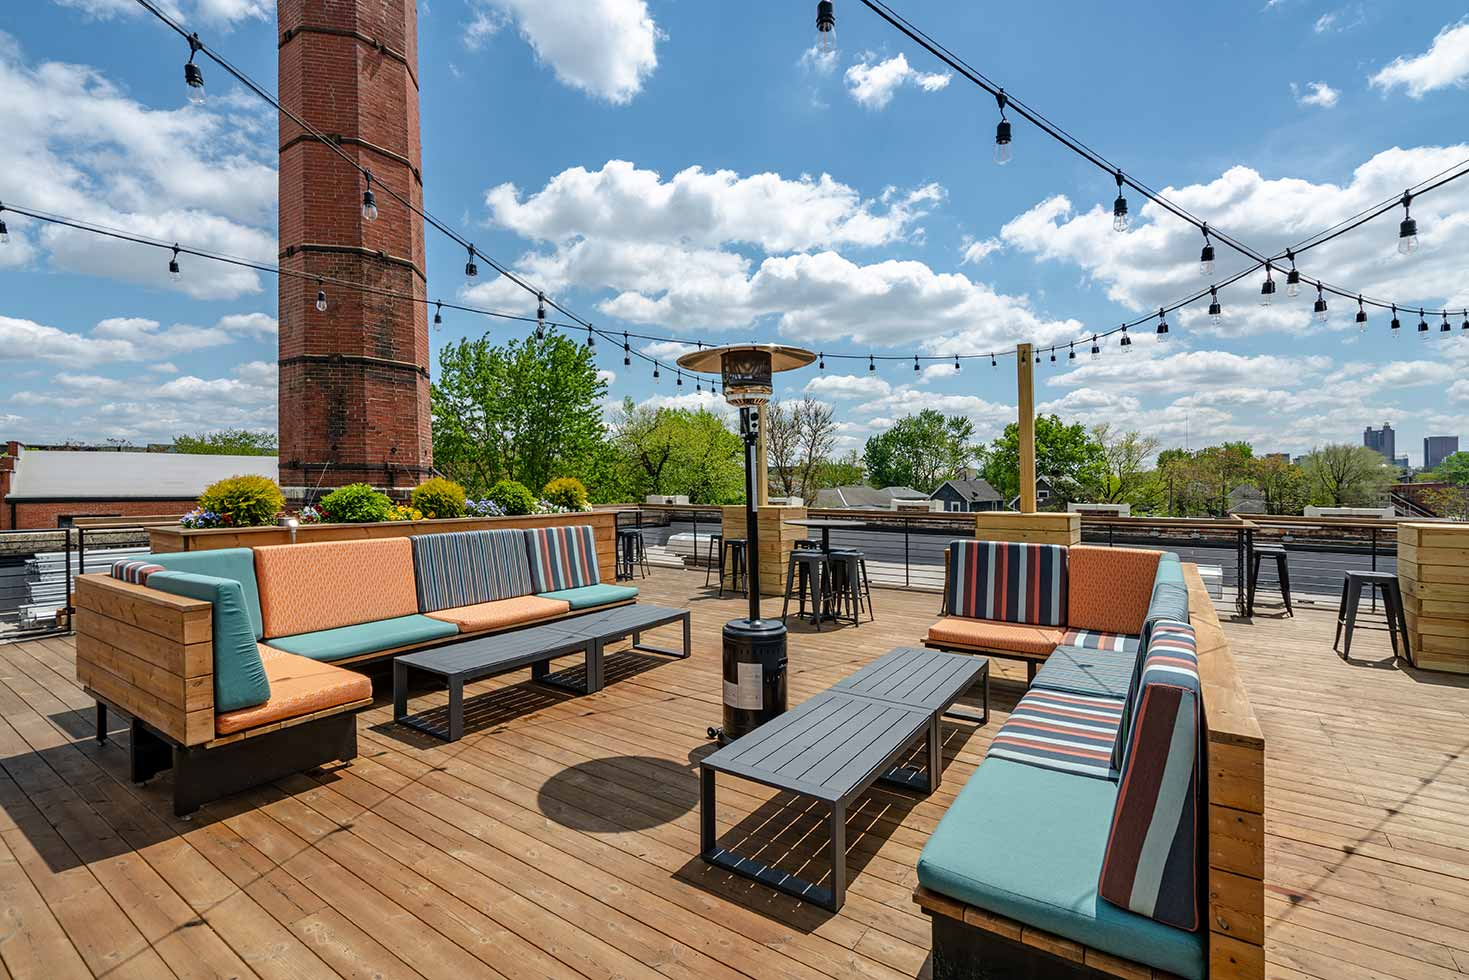 Rooftop at Budd Dairy Food Hall with long couch seating and wood deck.